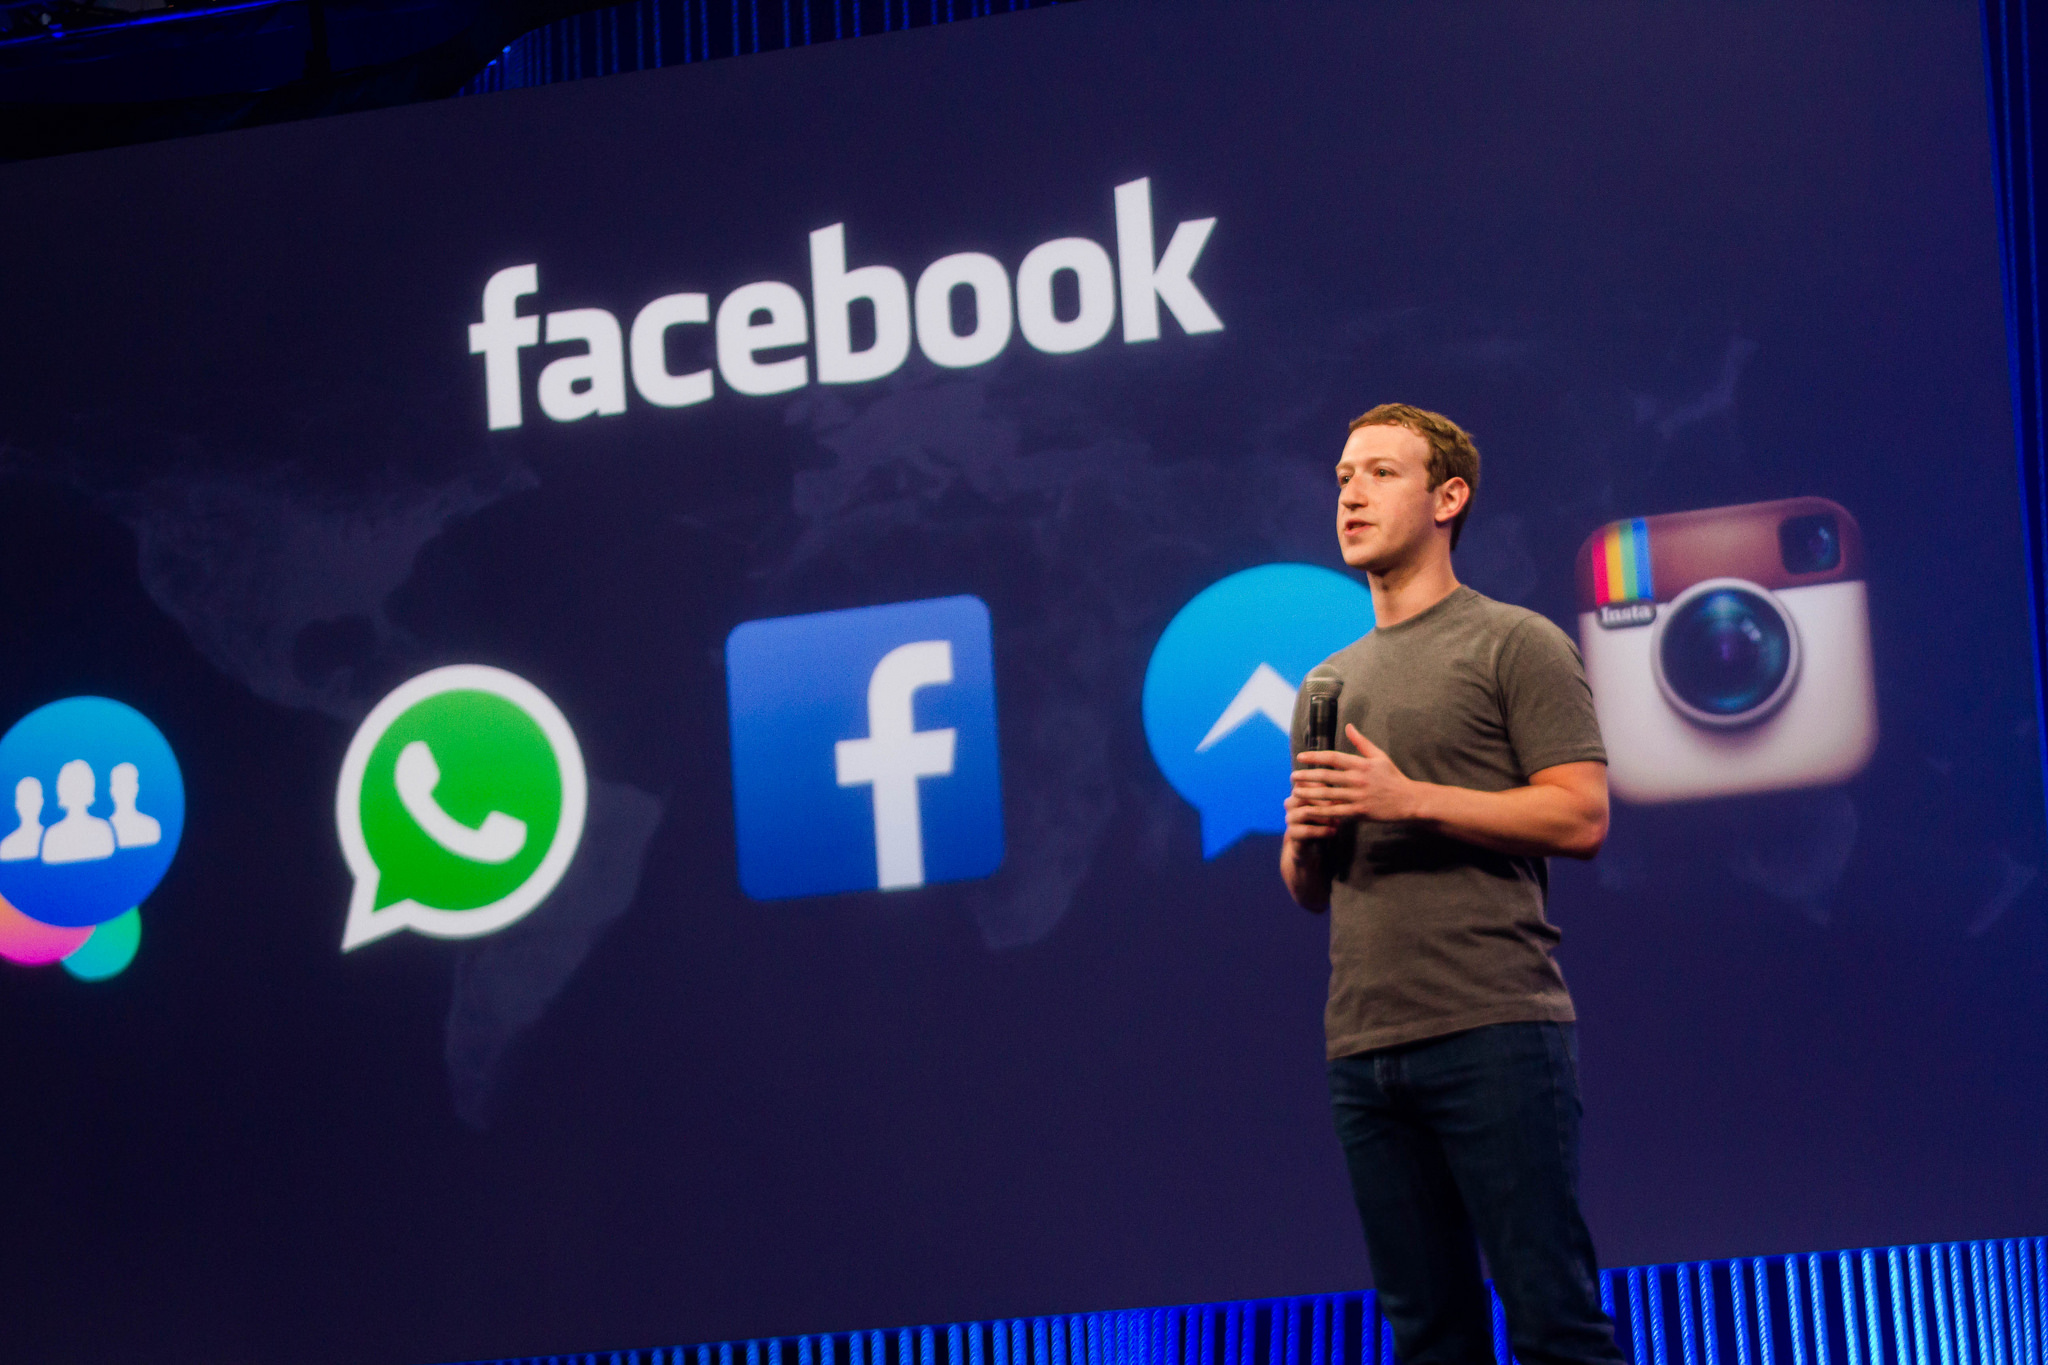 Mark Zuckerberg makes cursory mention of Facebook murder video at F8